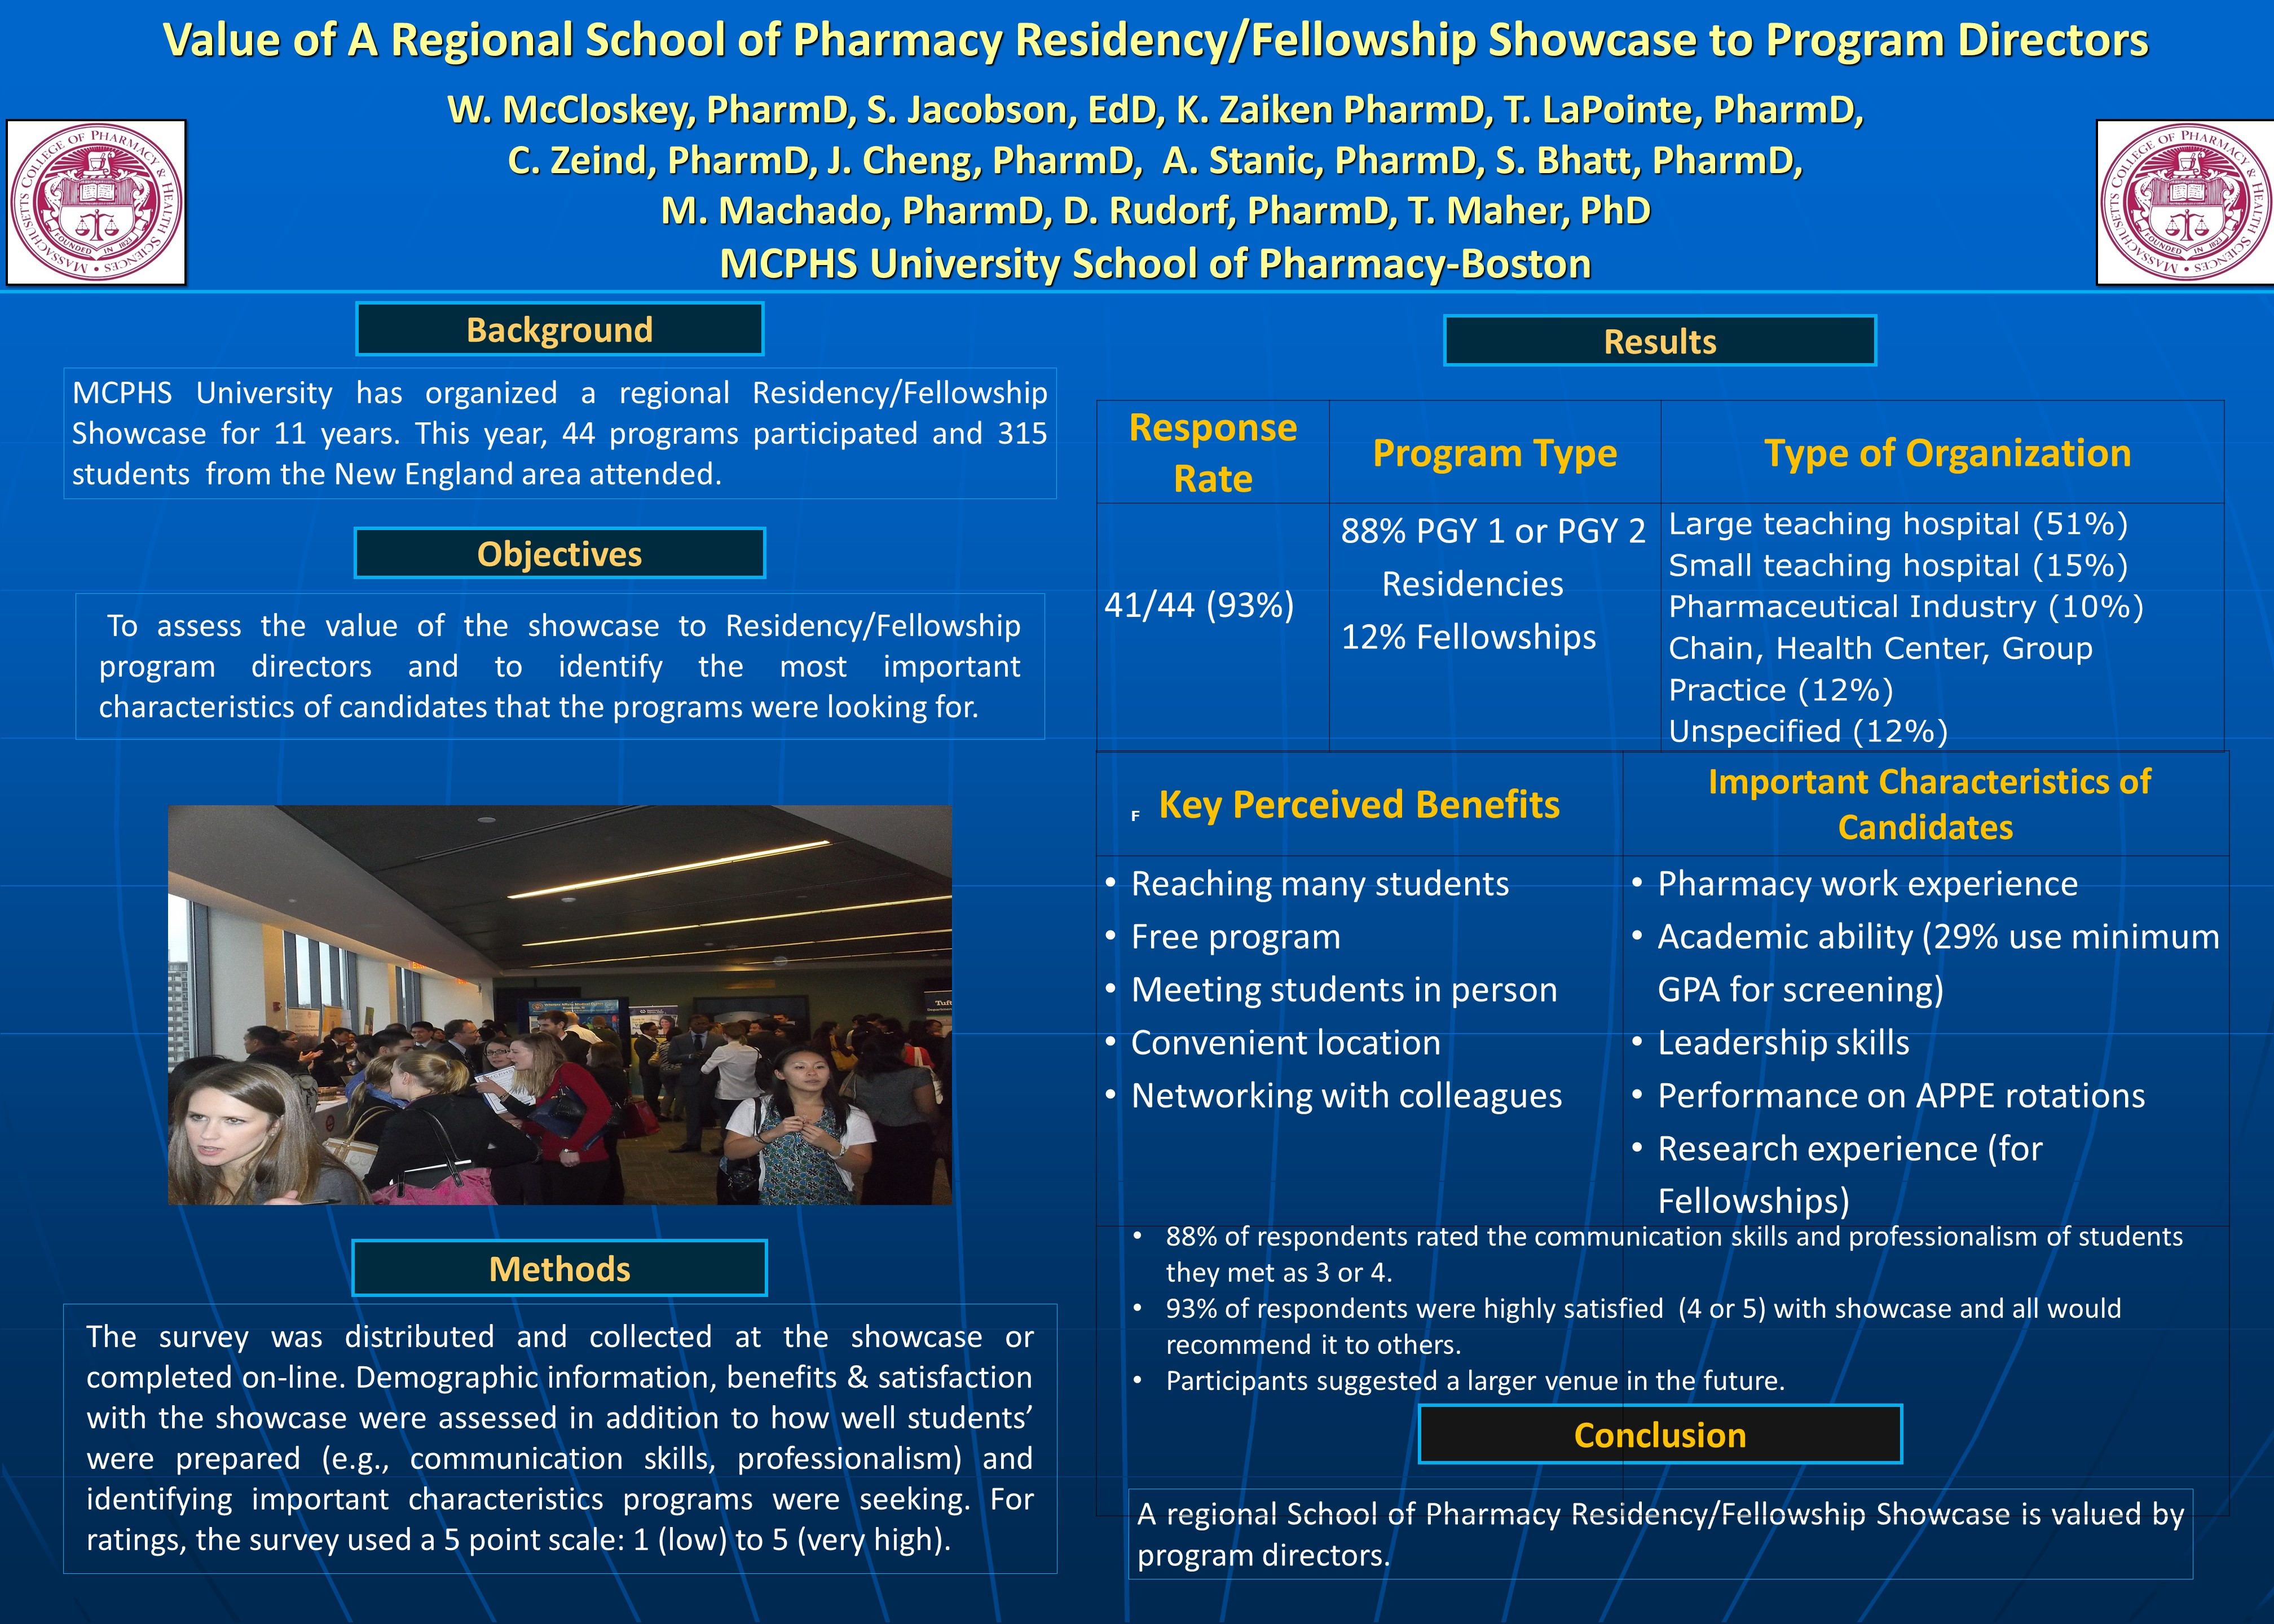 Value of a Regional School of Pharmacy Residency/Fellowship Showcase to Program Directors